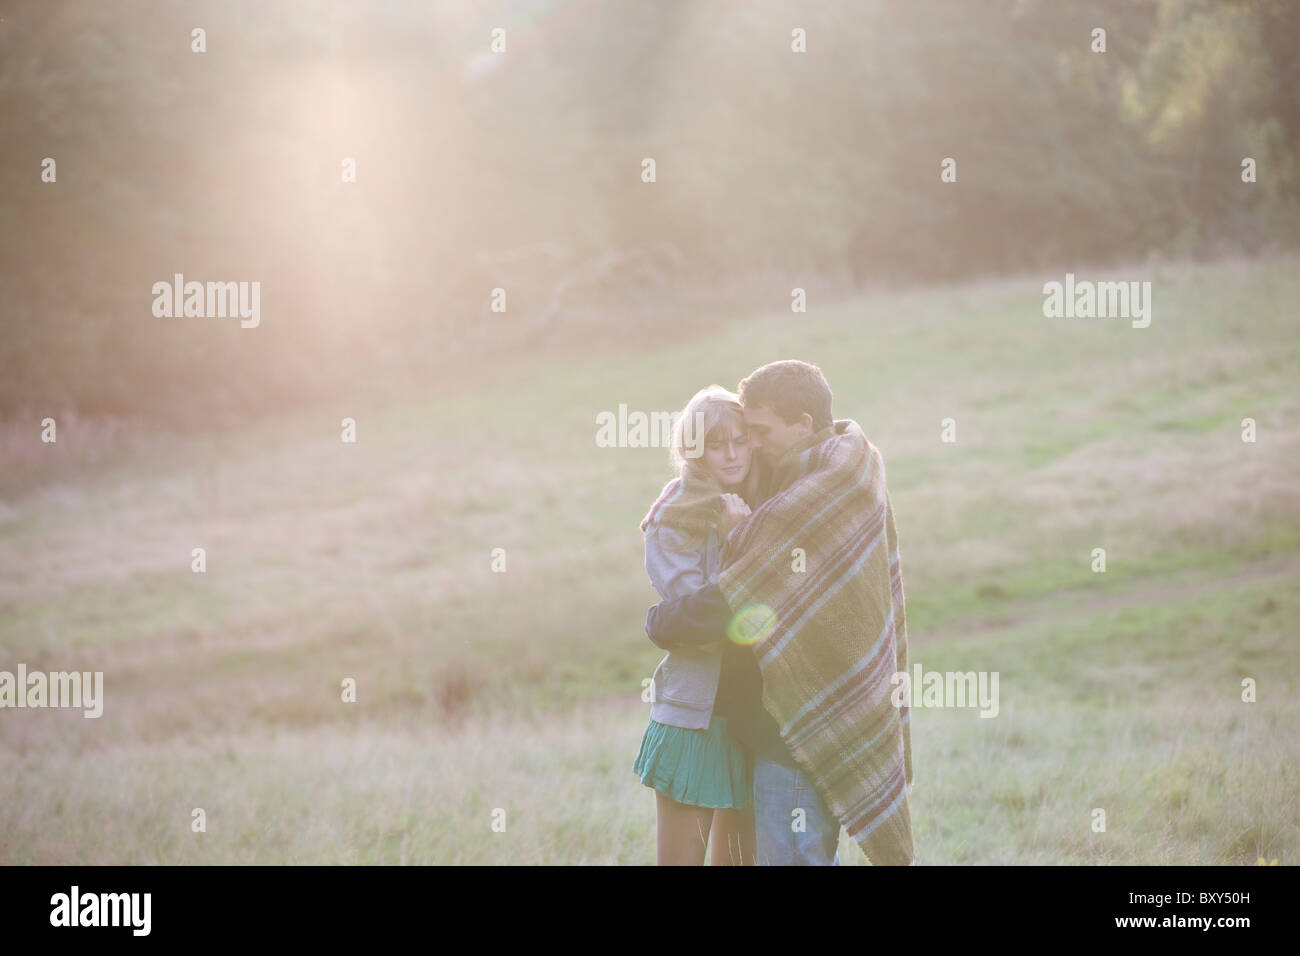 A young couple embracing outdoors, wrapped in a blanket - Stock Image